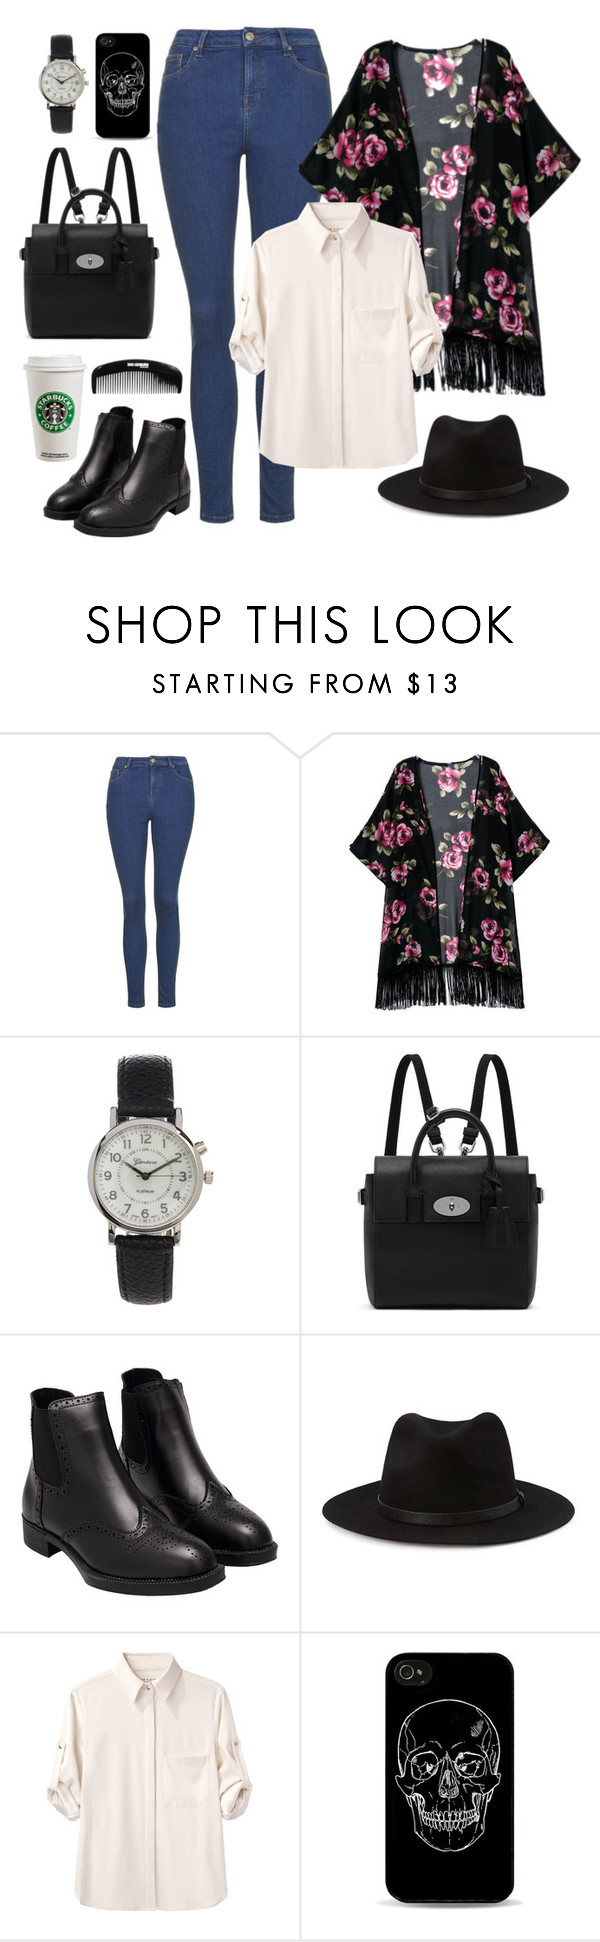 """""""Sightseeing with B.A.P // Himchan"""" by berrie95 on Polyvore featuring Geneva, Mulberry, Forever 21, rag & bone, bap and himchan"""